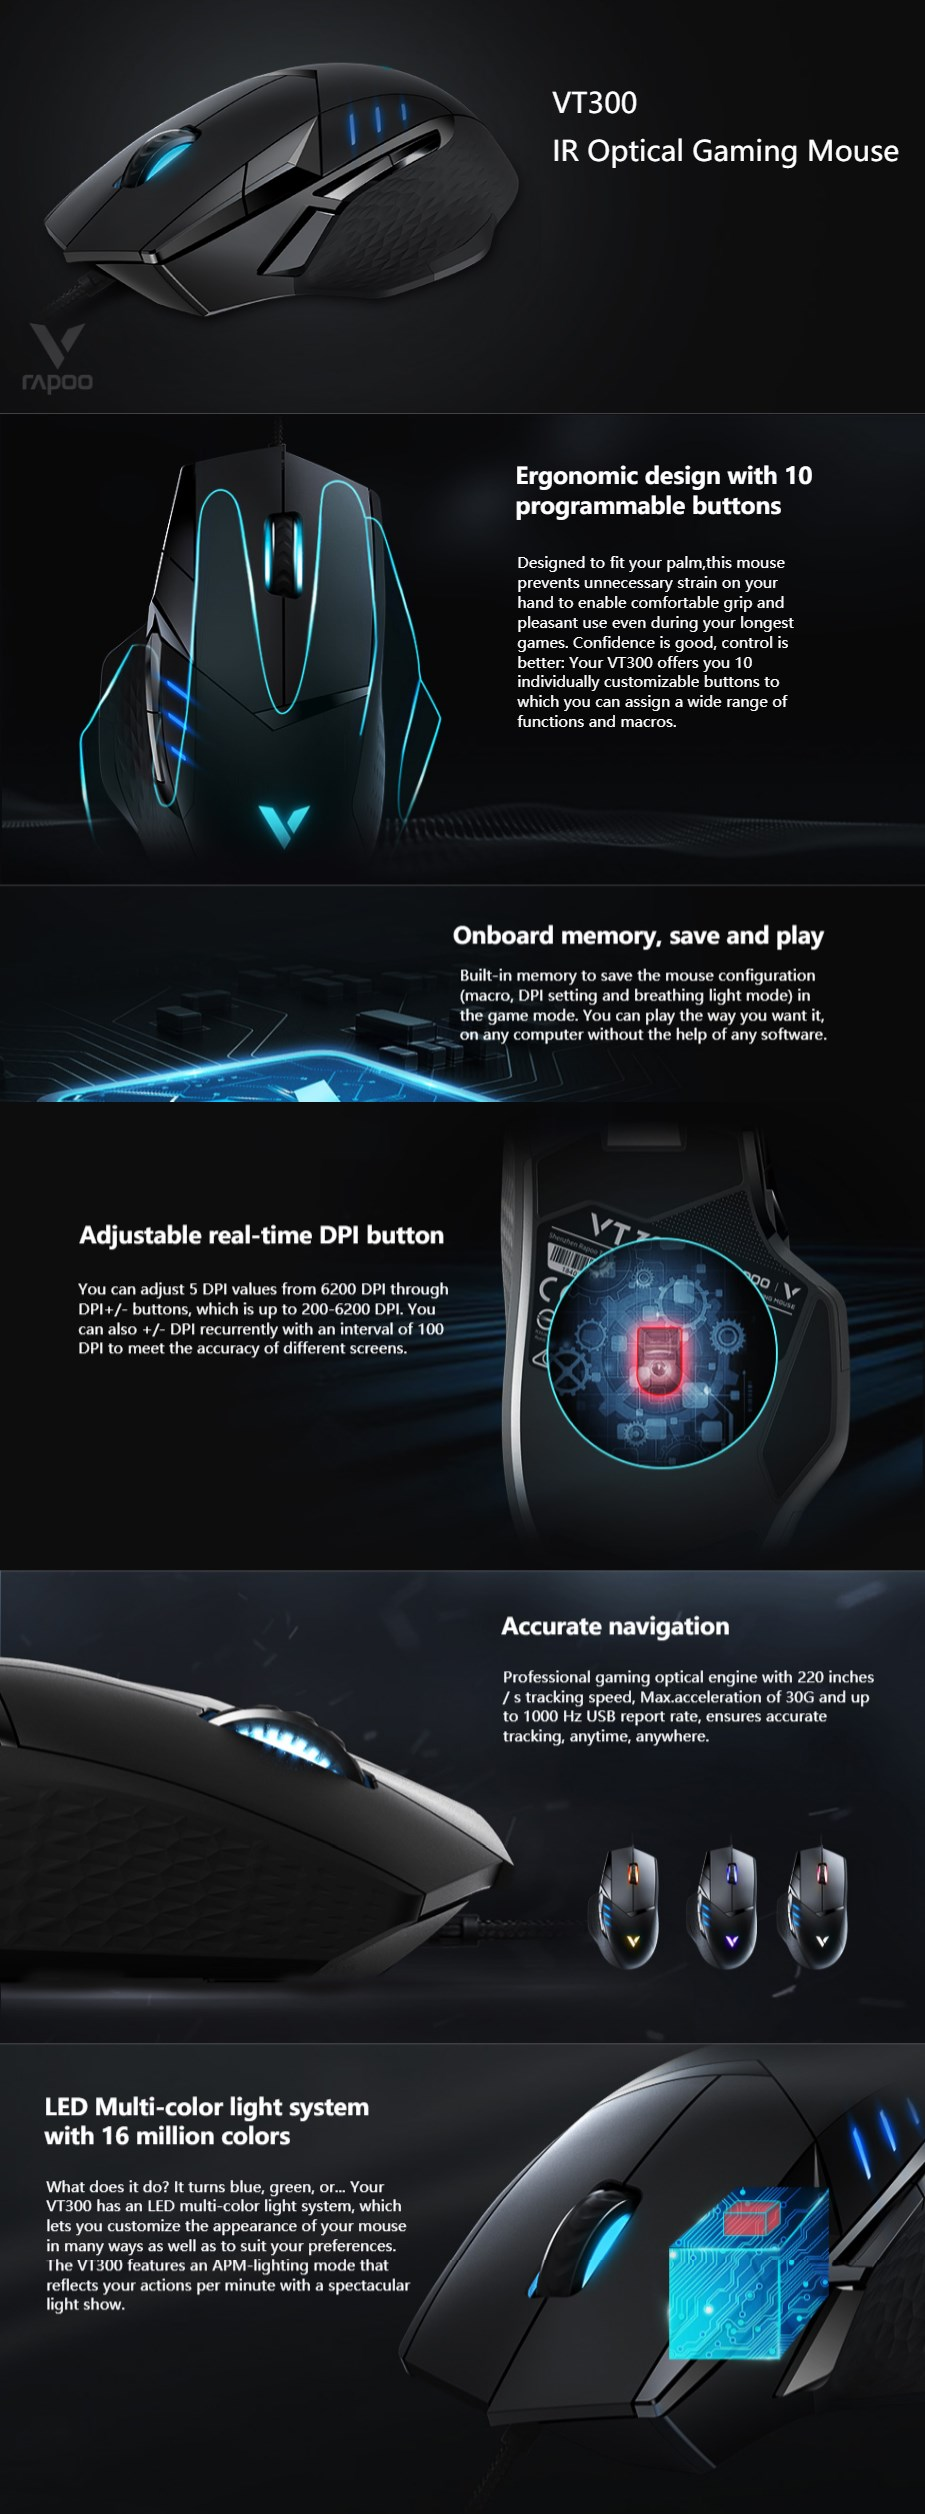 Rapoo VT300 RGB Optical Gaming Mouse - Overview 1